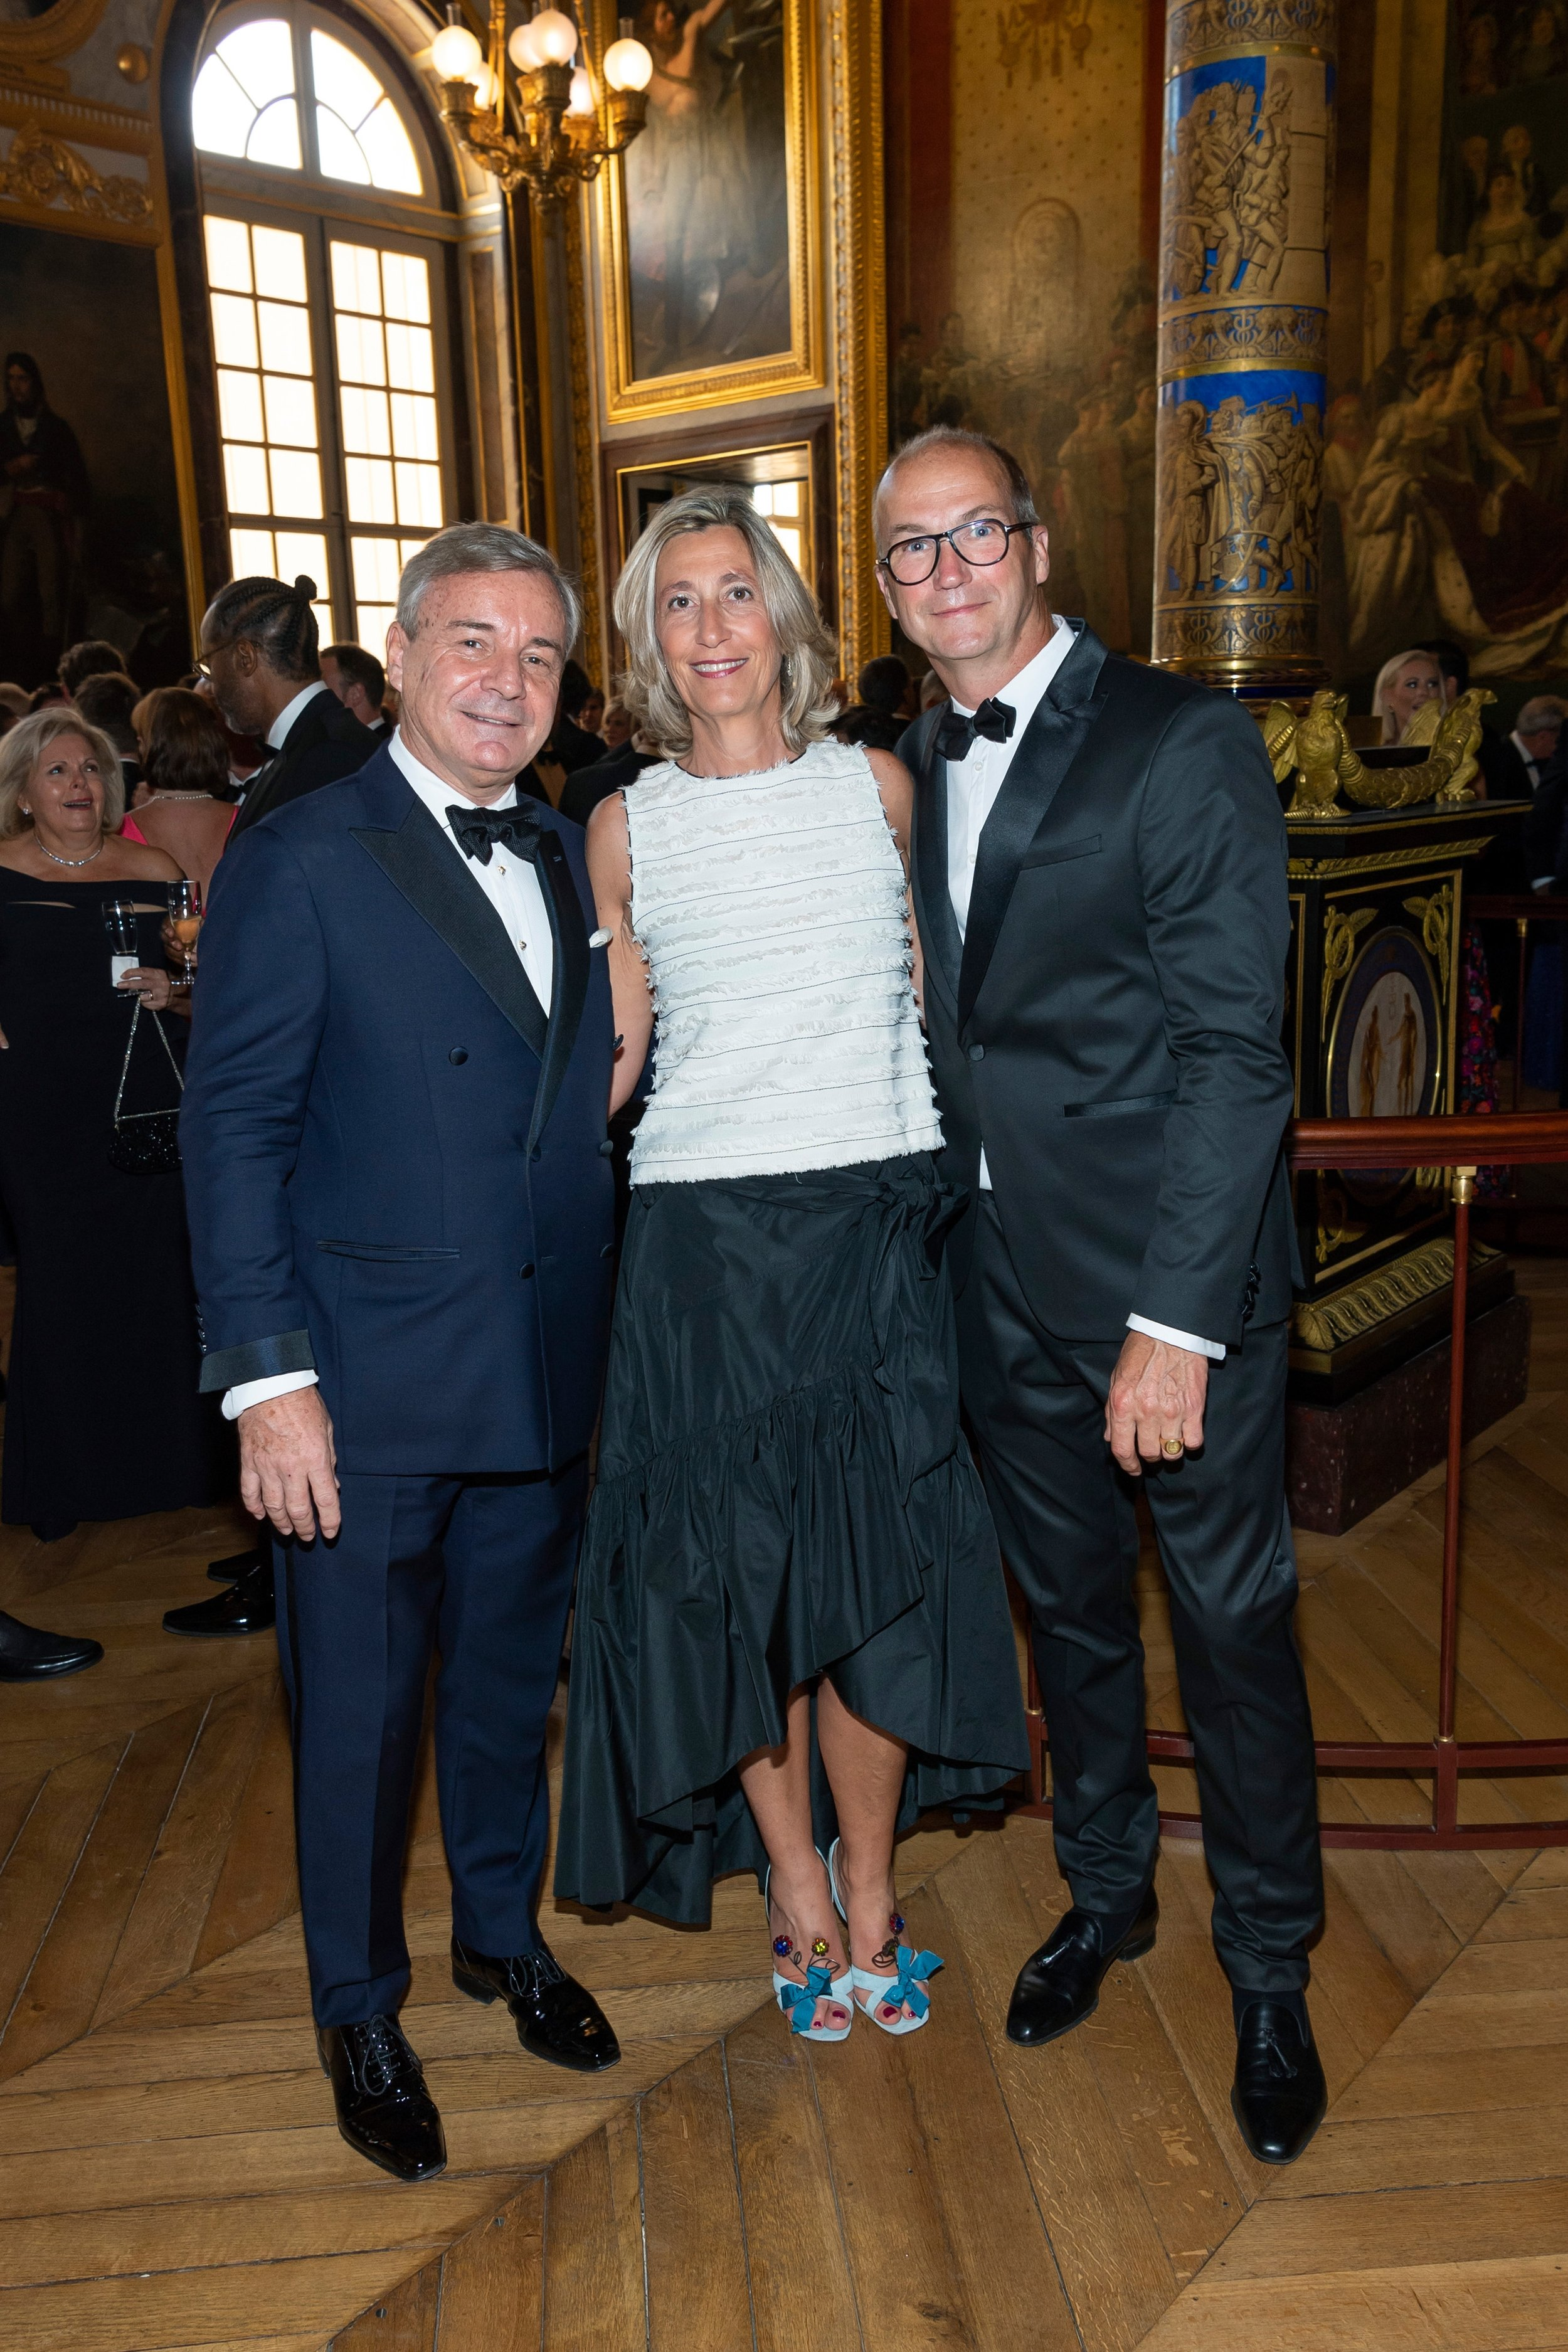 Franck Laverdin, Countess Diane de Montrichard, Count Thierry de Montrichard